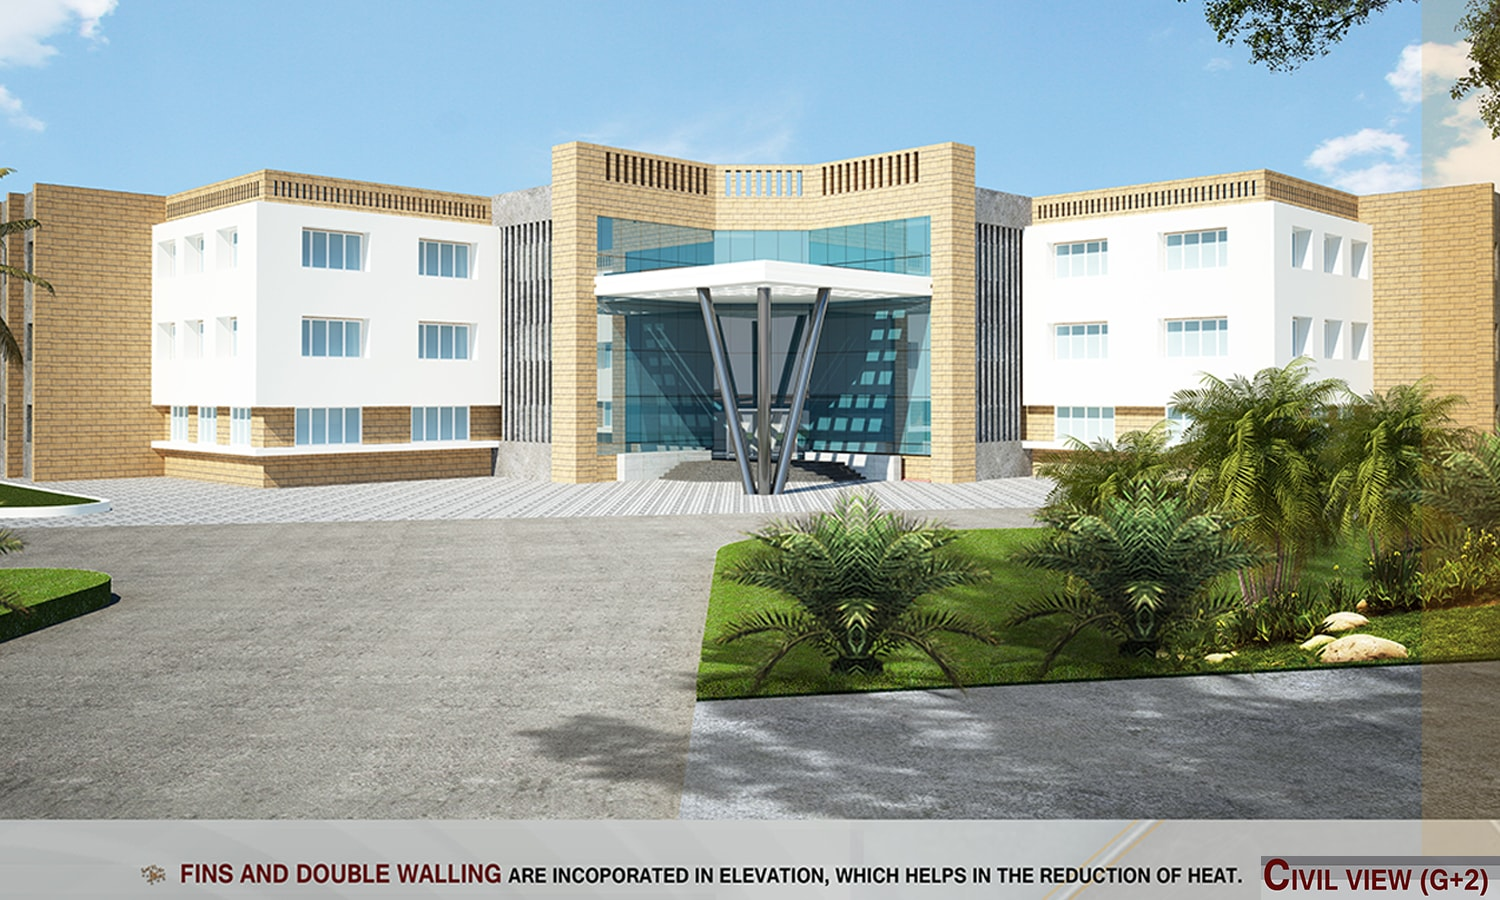 Engineering College Designed for Karnataka Housing Board